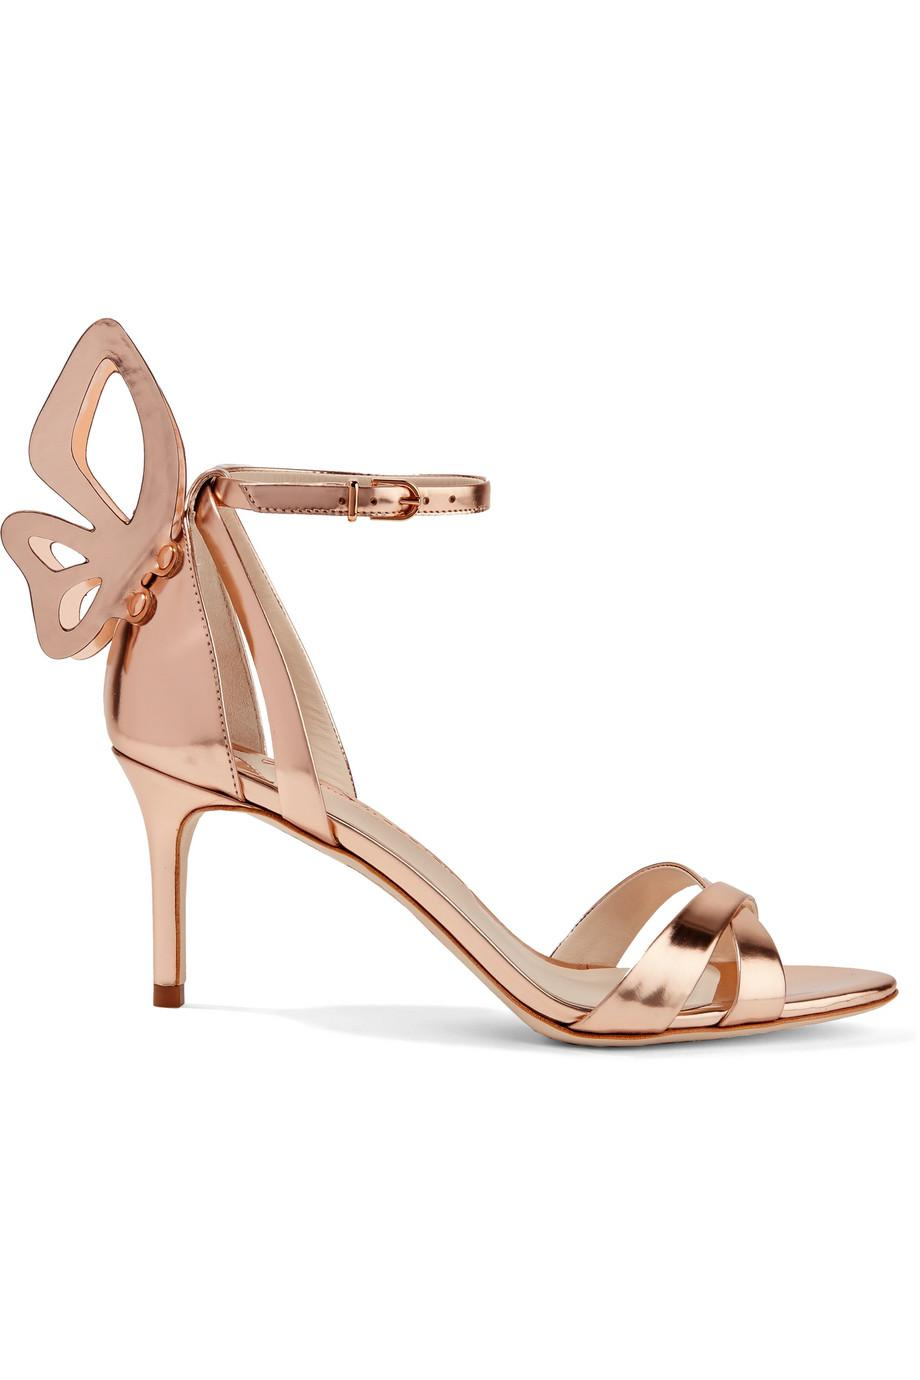 Madame Chiara Metallic Leather Sandals - Rose gold Sophia Webster Choice For Sale Outlet Looking For Wiki Cheap Online View Cheap Price HqiBoi1u